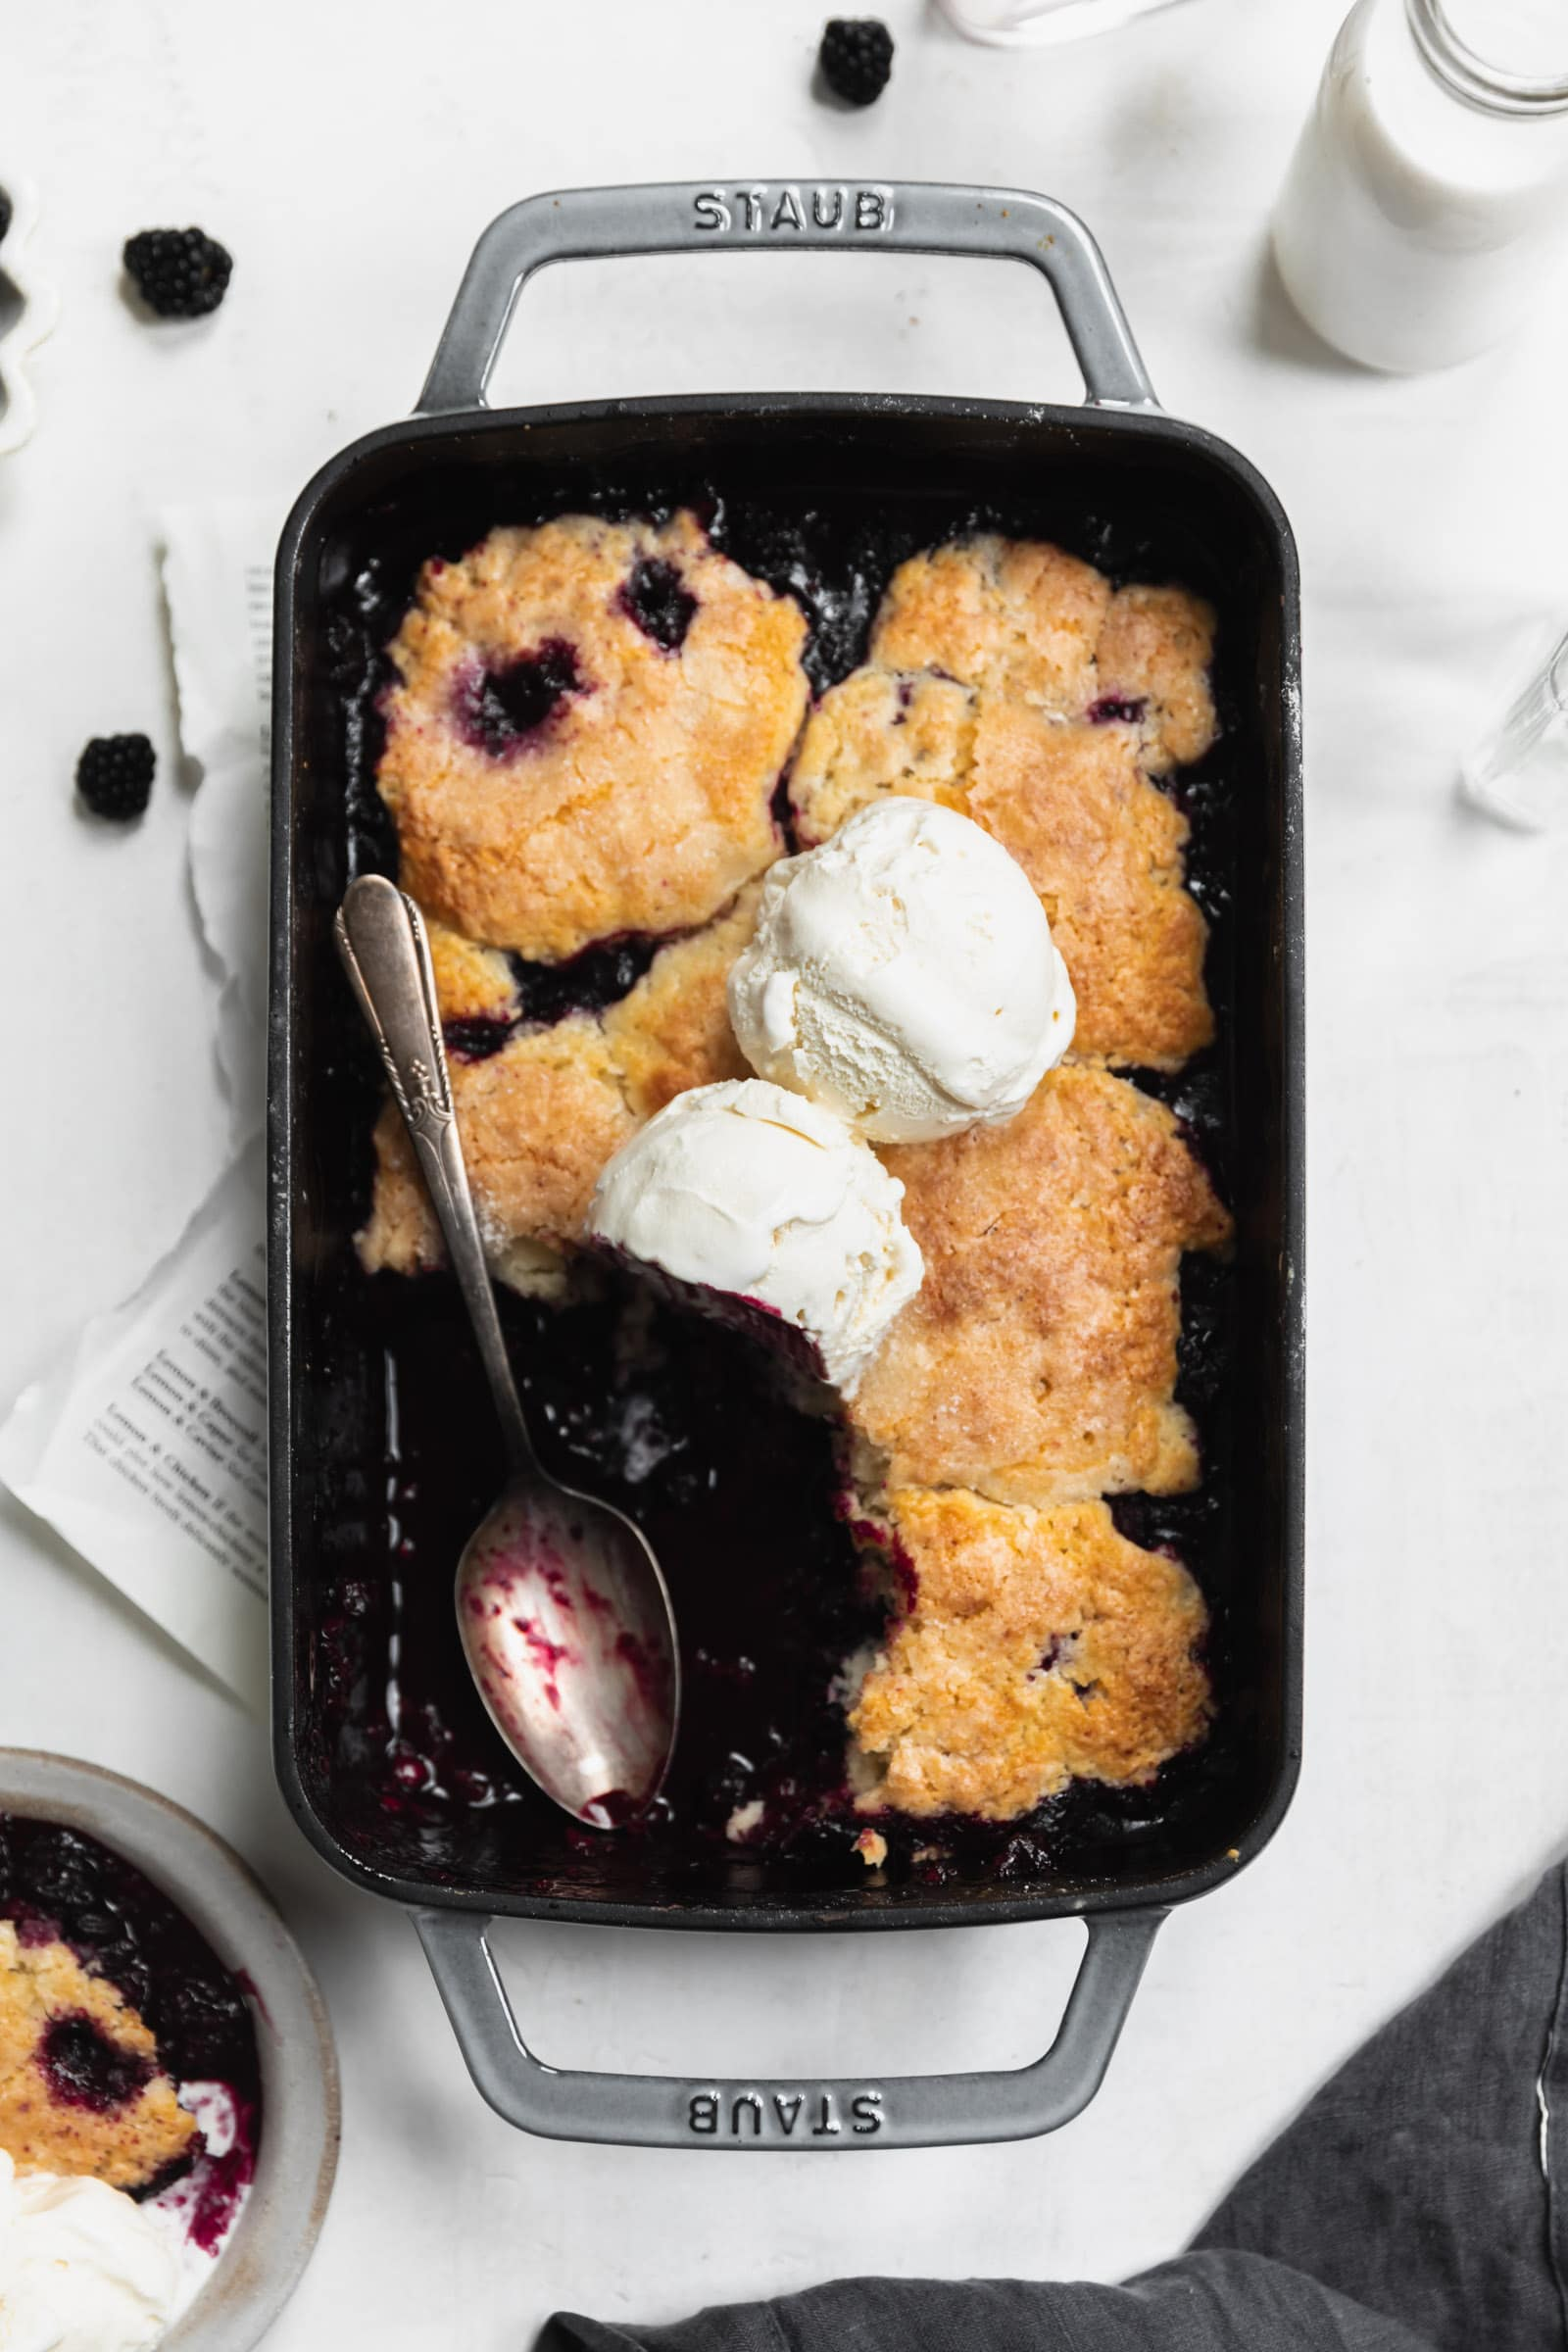 mixed berry cobbler with vanilla ice cream and spoon